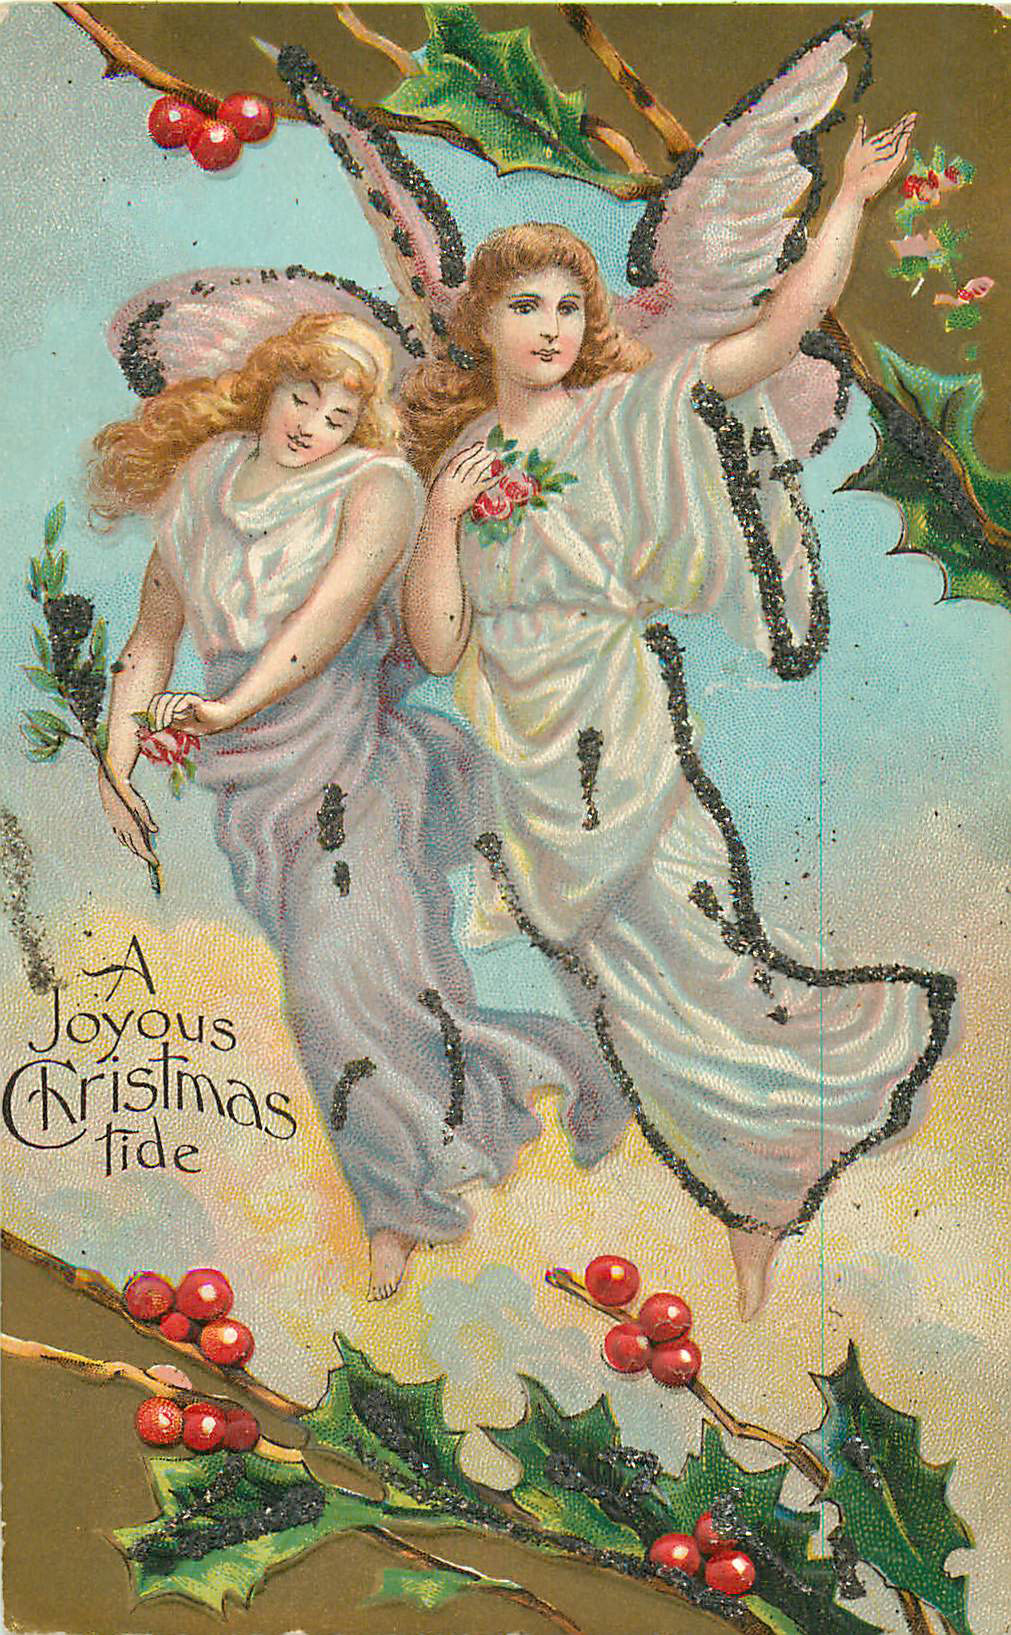 A Joyous Christmas Tide - 2 Angels with Hollly